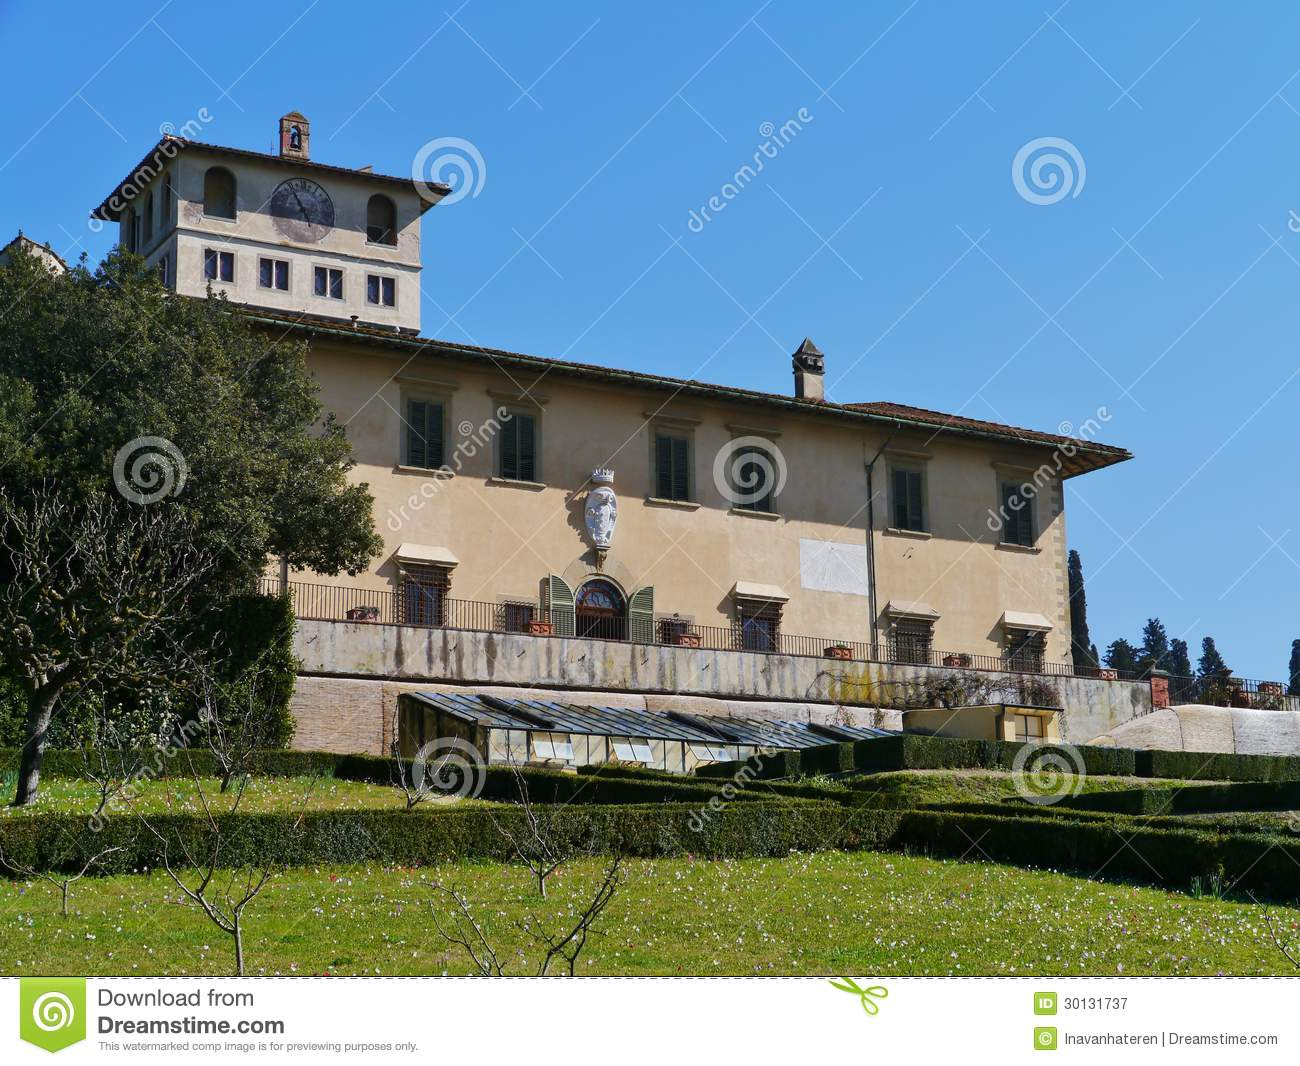 Palace in Castello in Italy